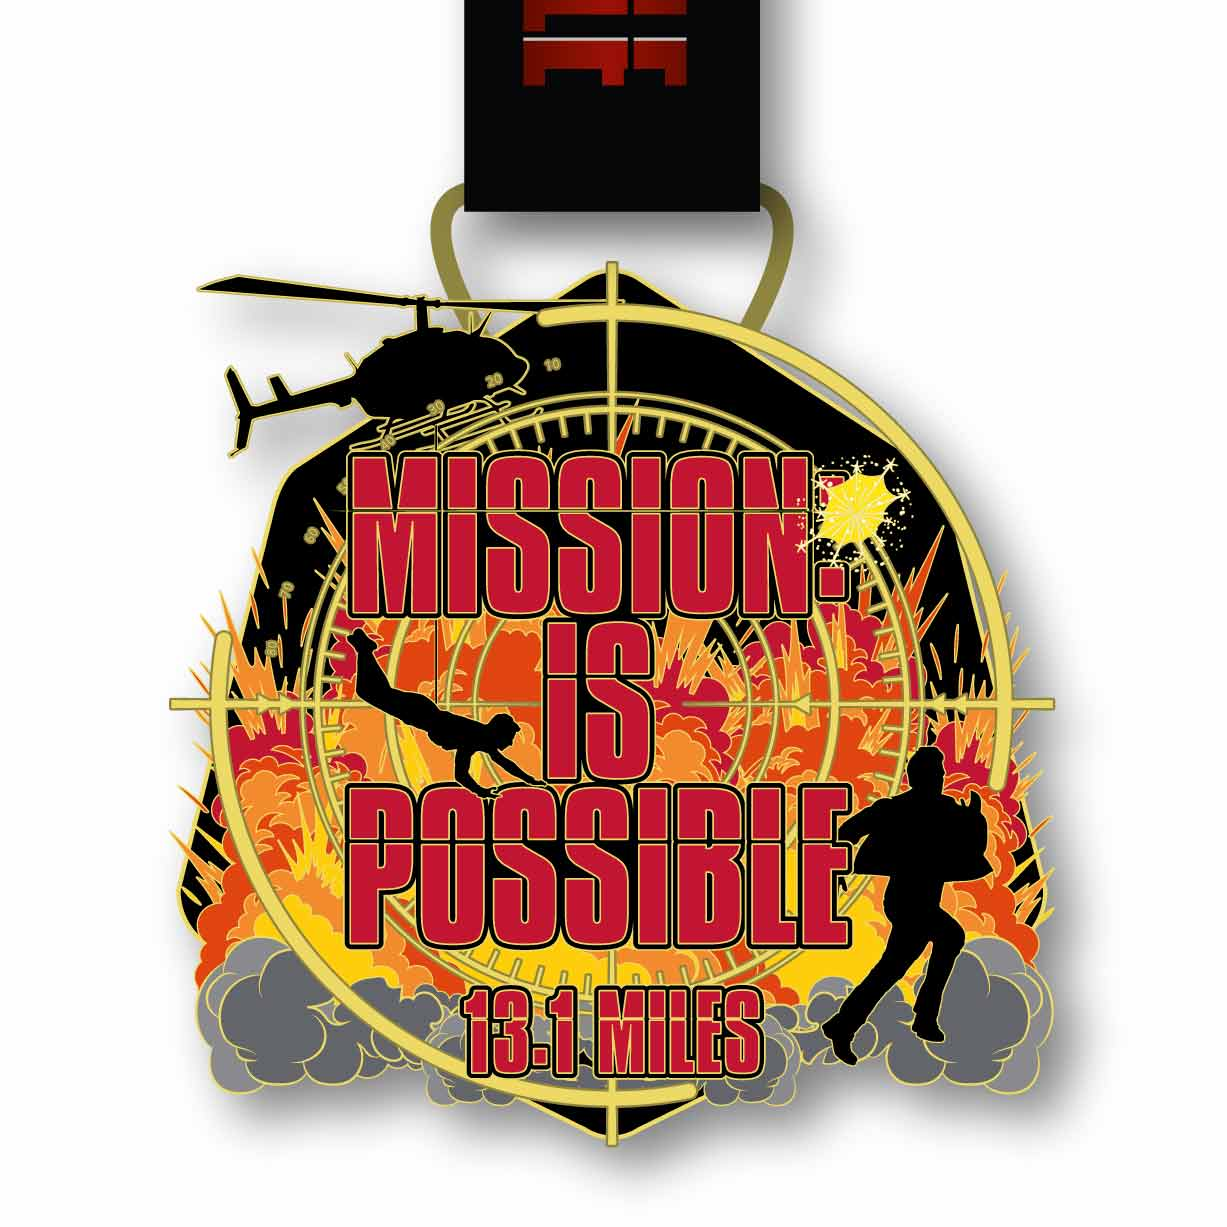 Completed the Mission is Possible 2021